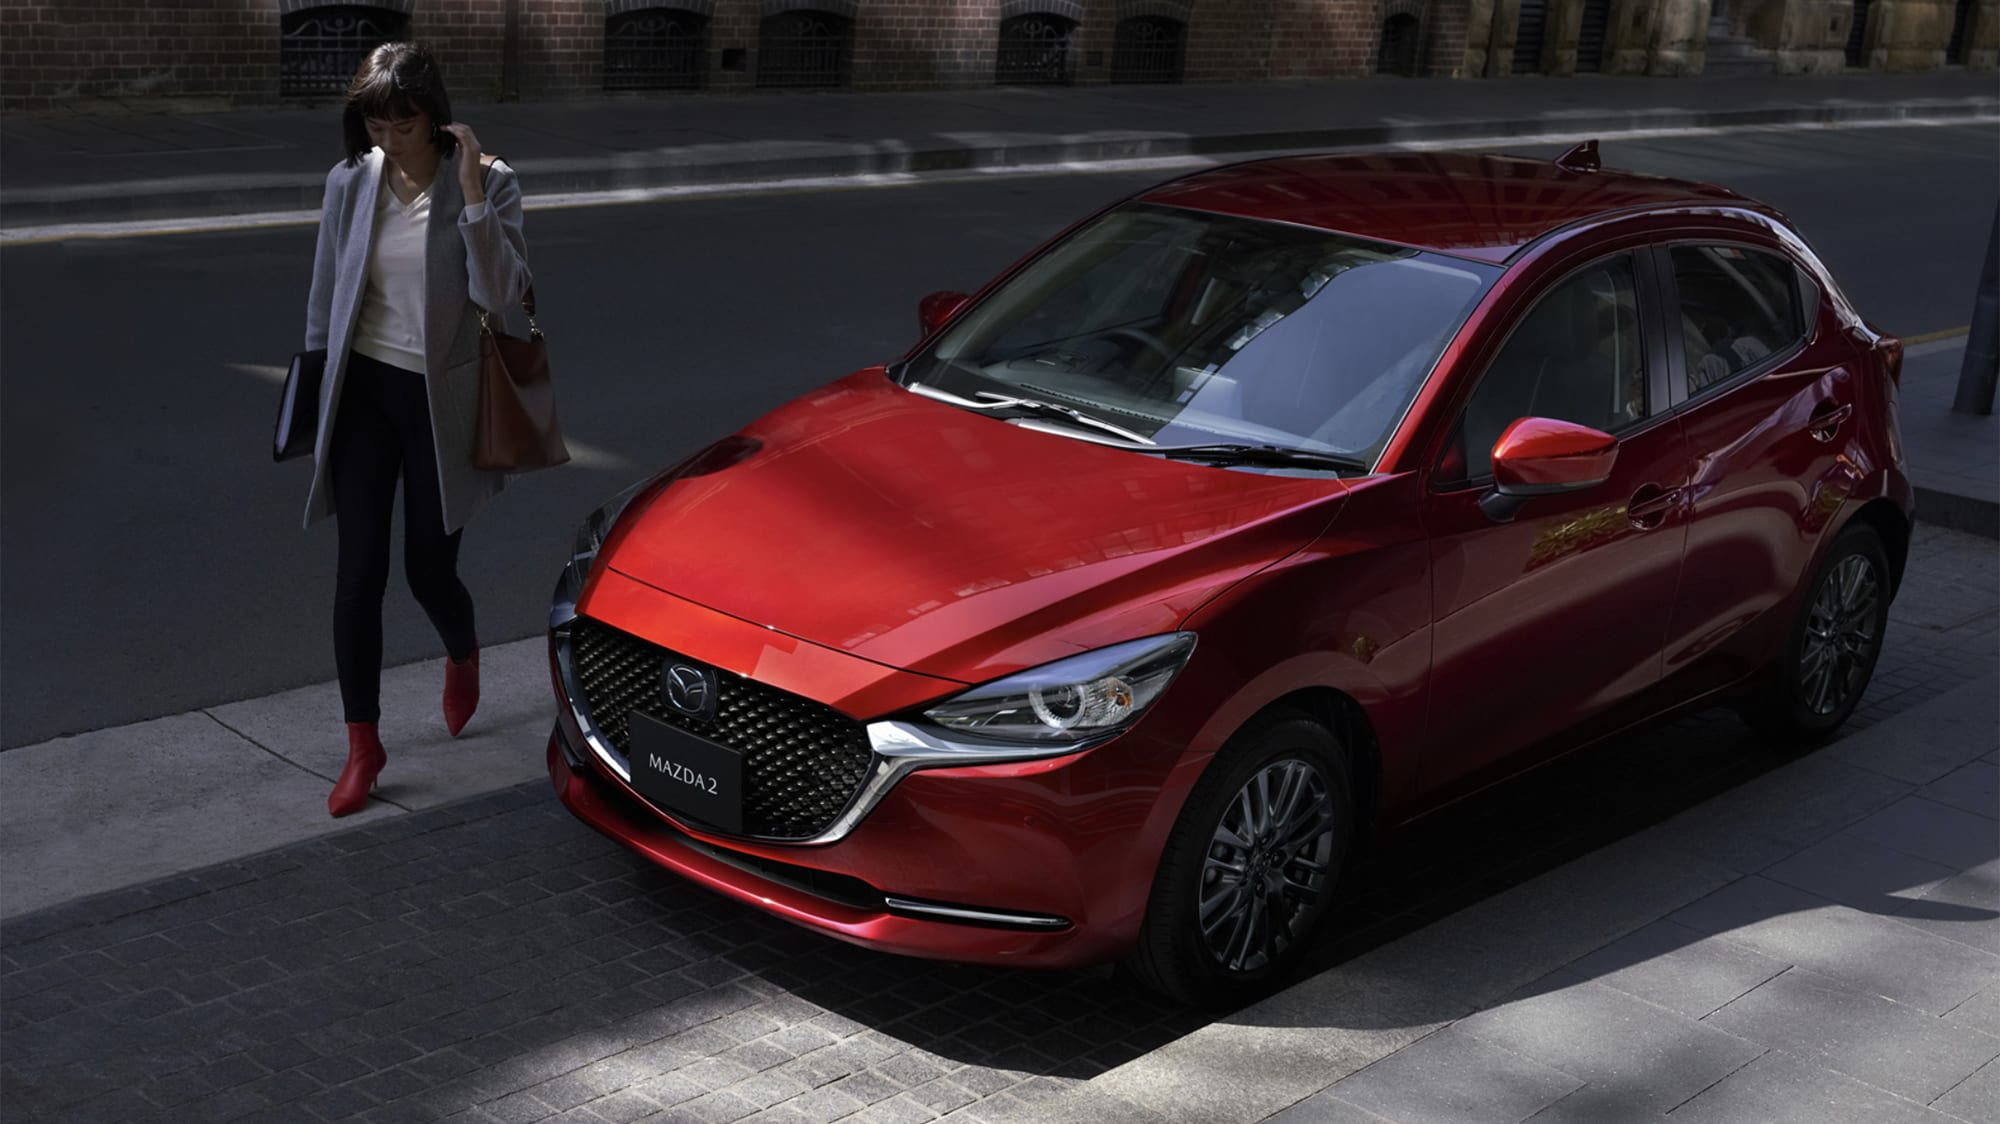 2020 Mazda 2 revealed for Japan, here next year